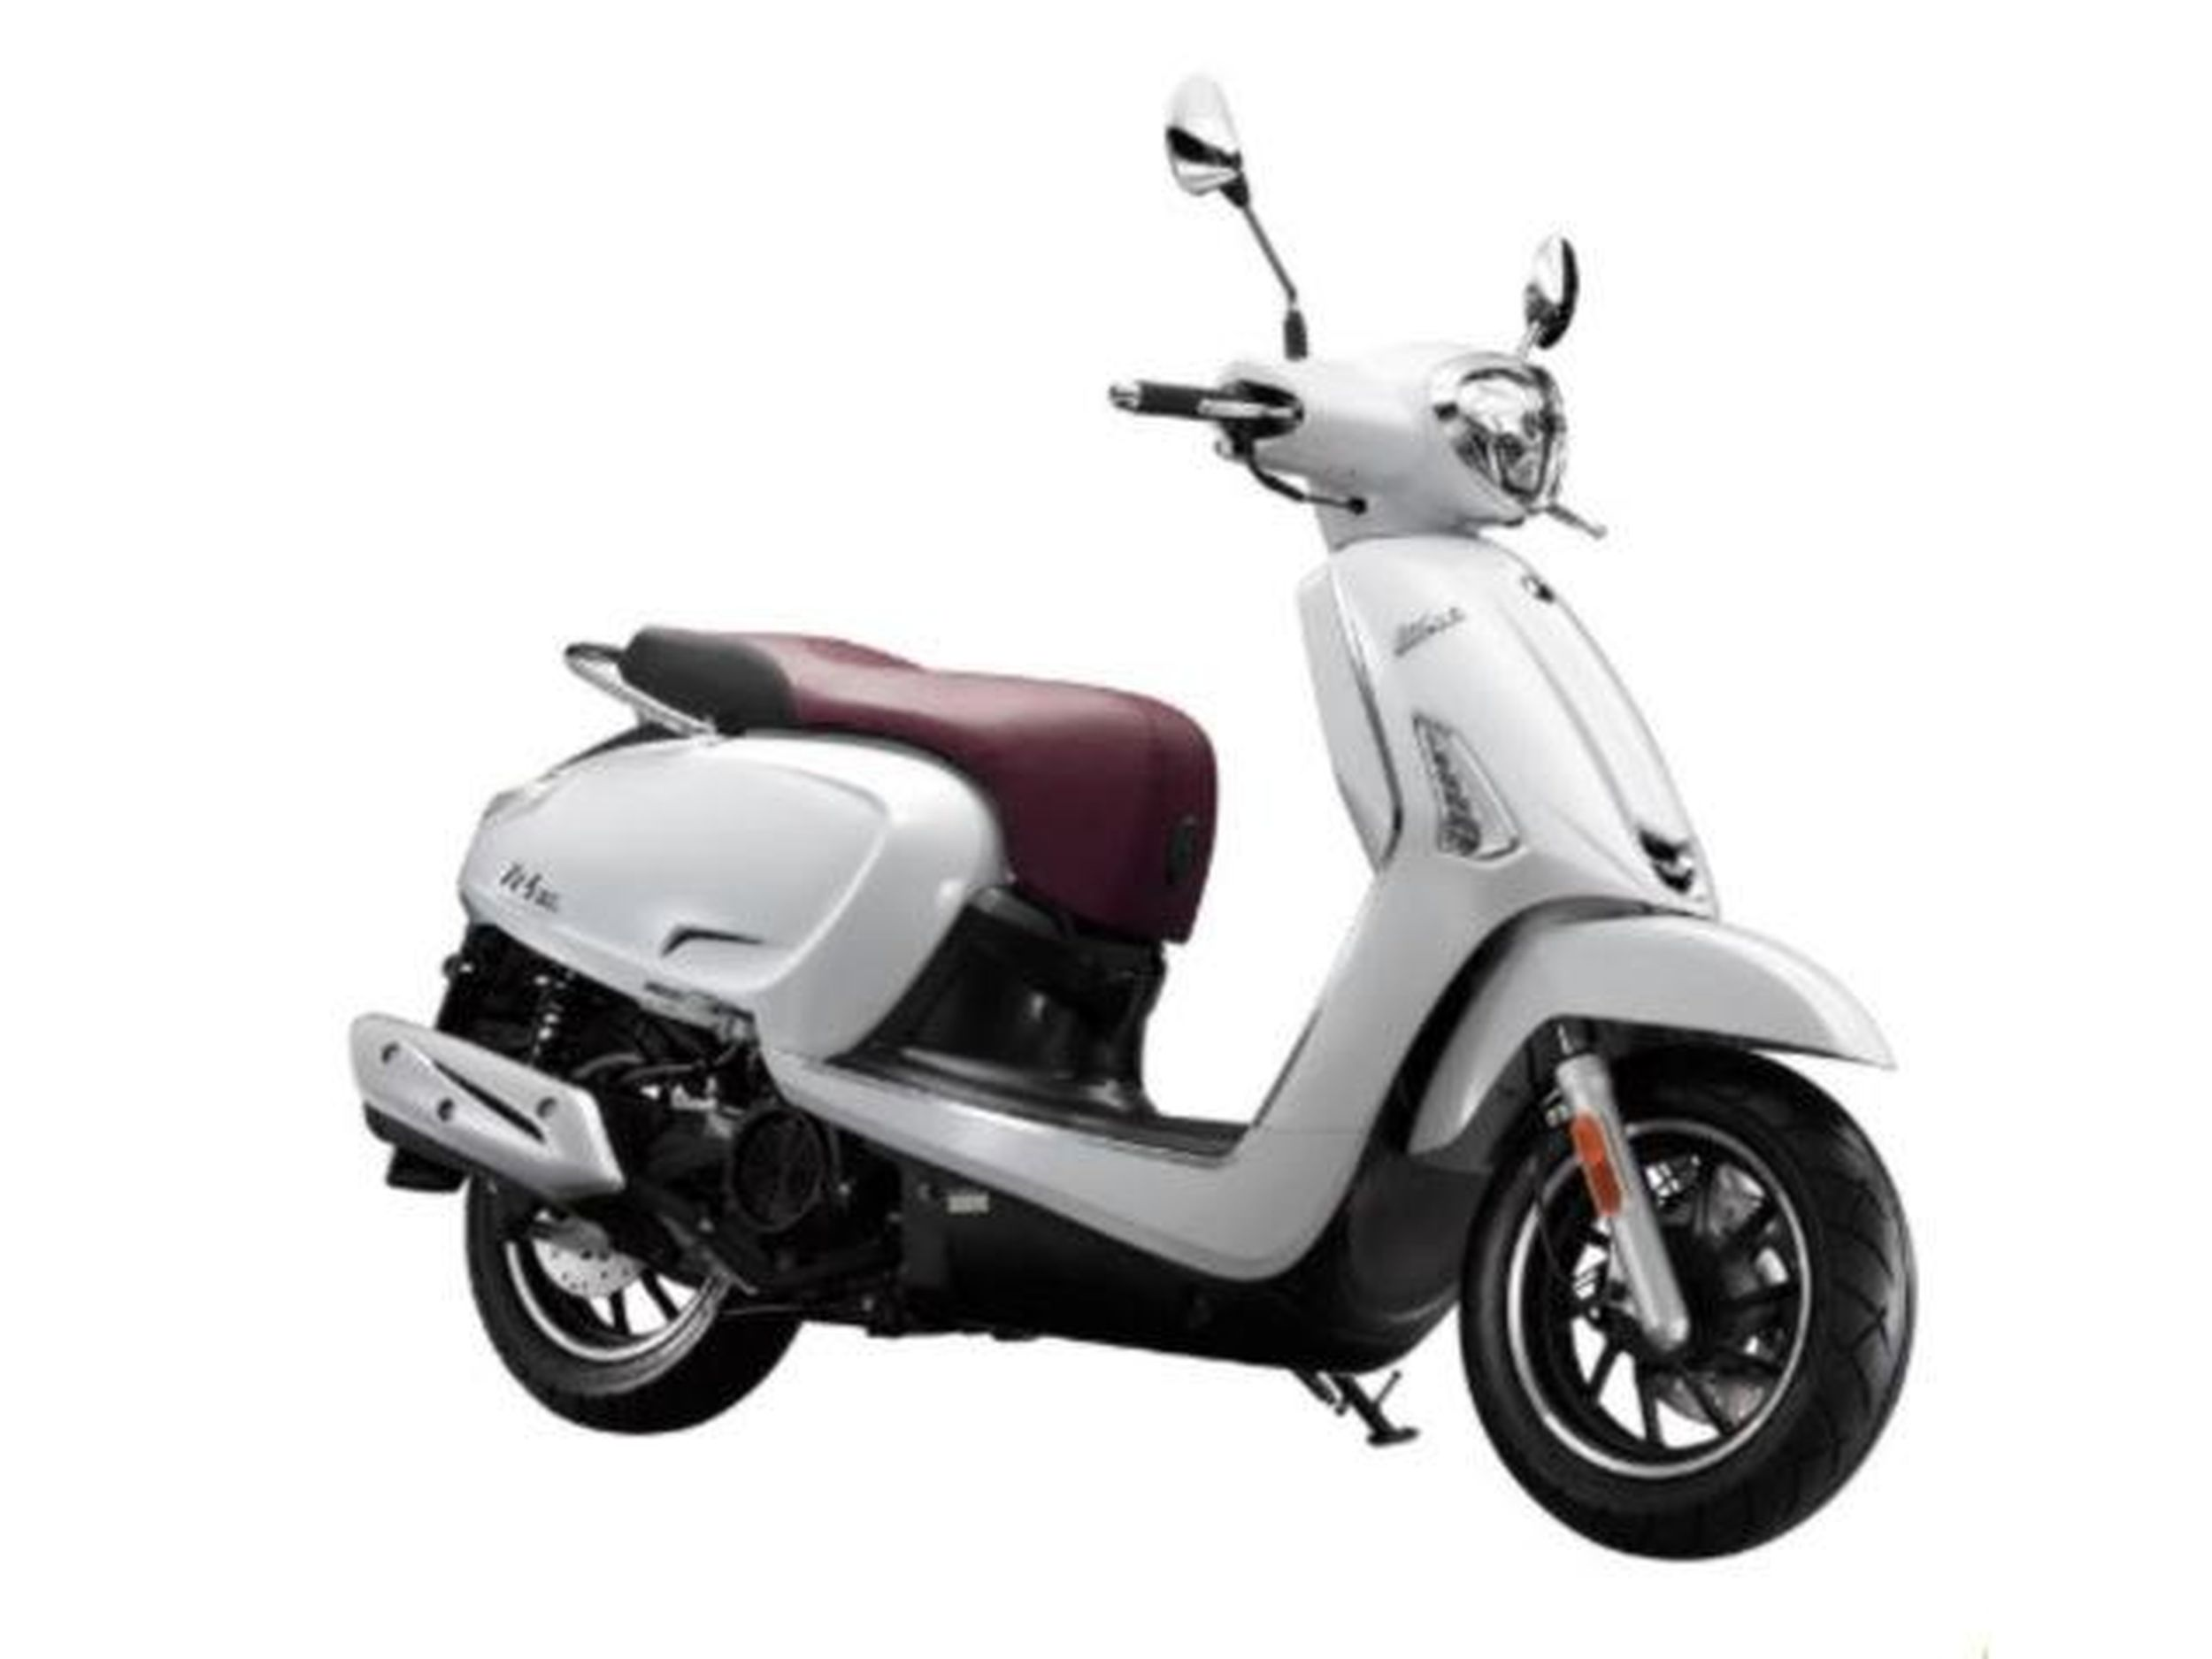 Kymco New Like 50 - All technical Data of the Model New Like 50 from ...